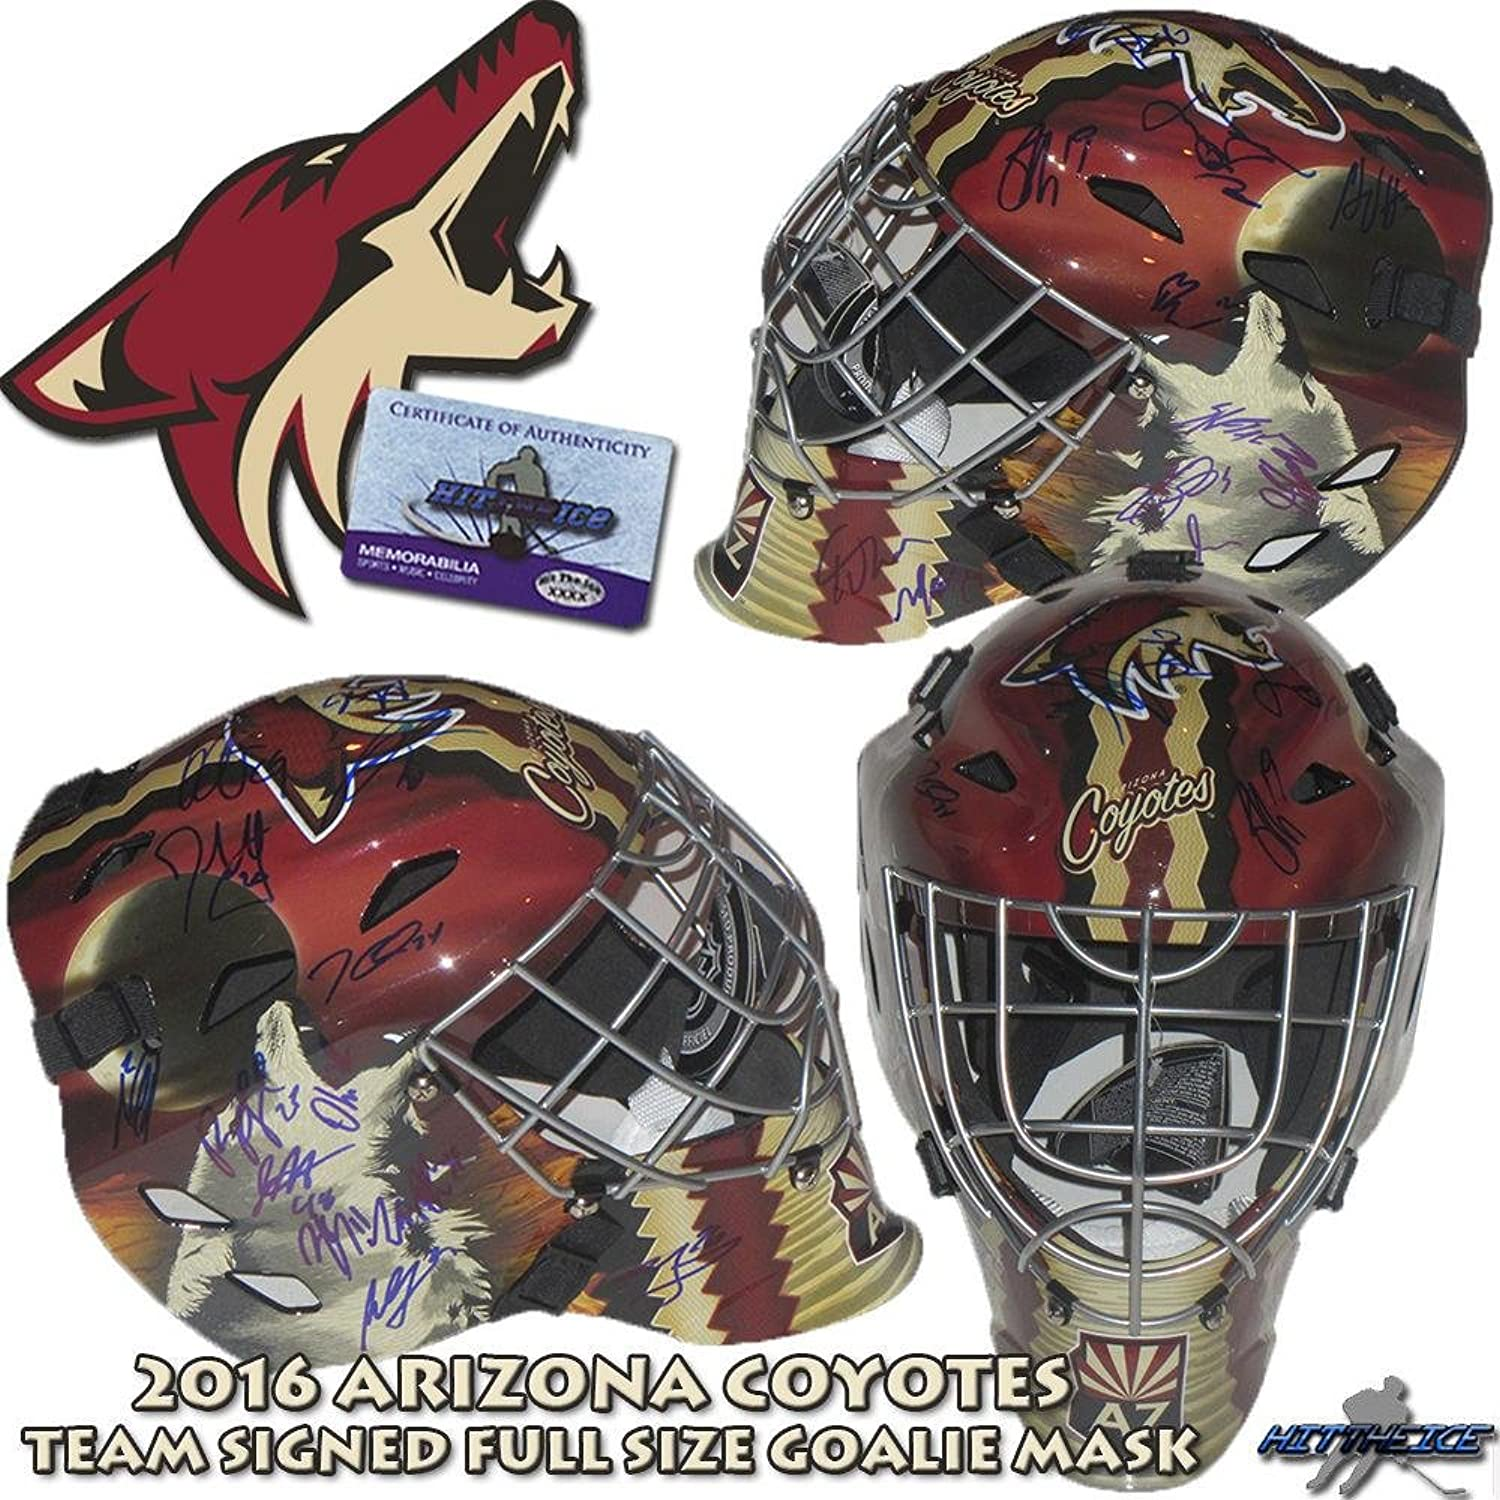 2016 Arizona Coyotes Team Signed FullSize Goalie MASK  DOMI  Duclair  Smith  Autographed NHL Helmets and Masks